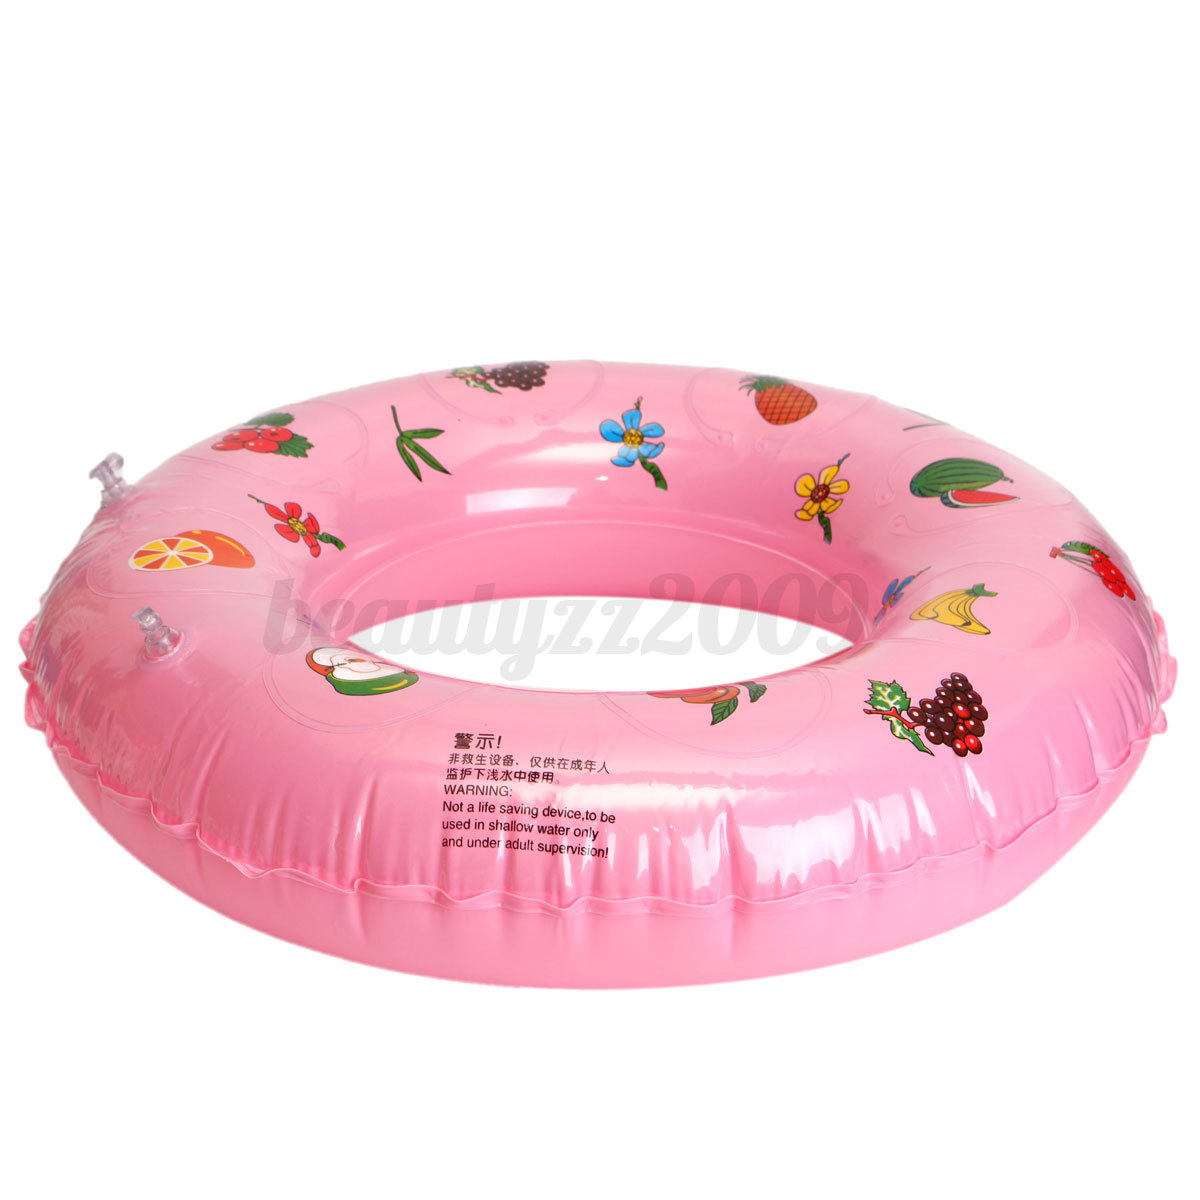 Inflatable Colored Swim Ring Kids Children Baby Summer Beach Swimming Pool Toy Ebay